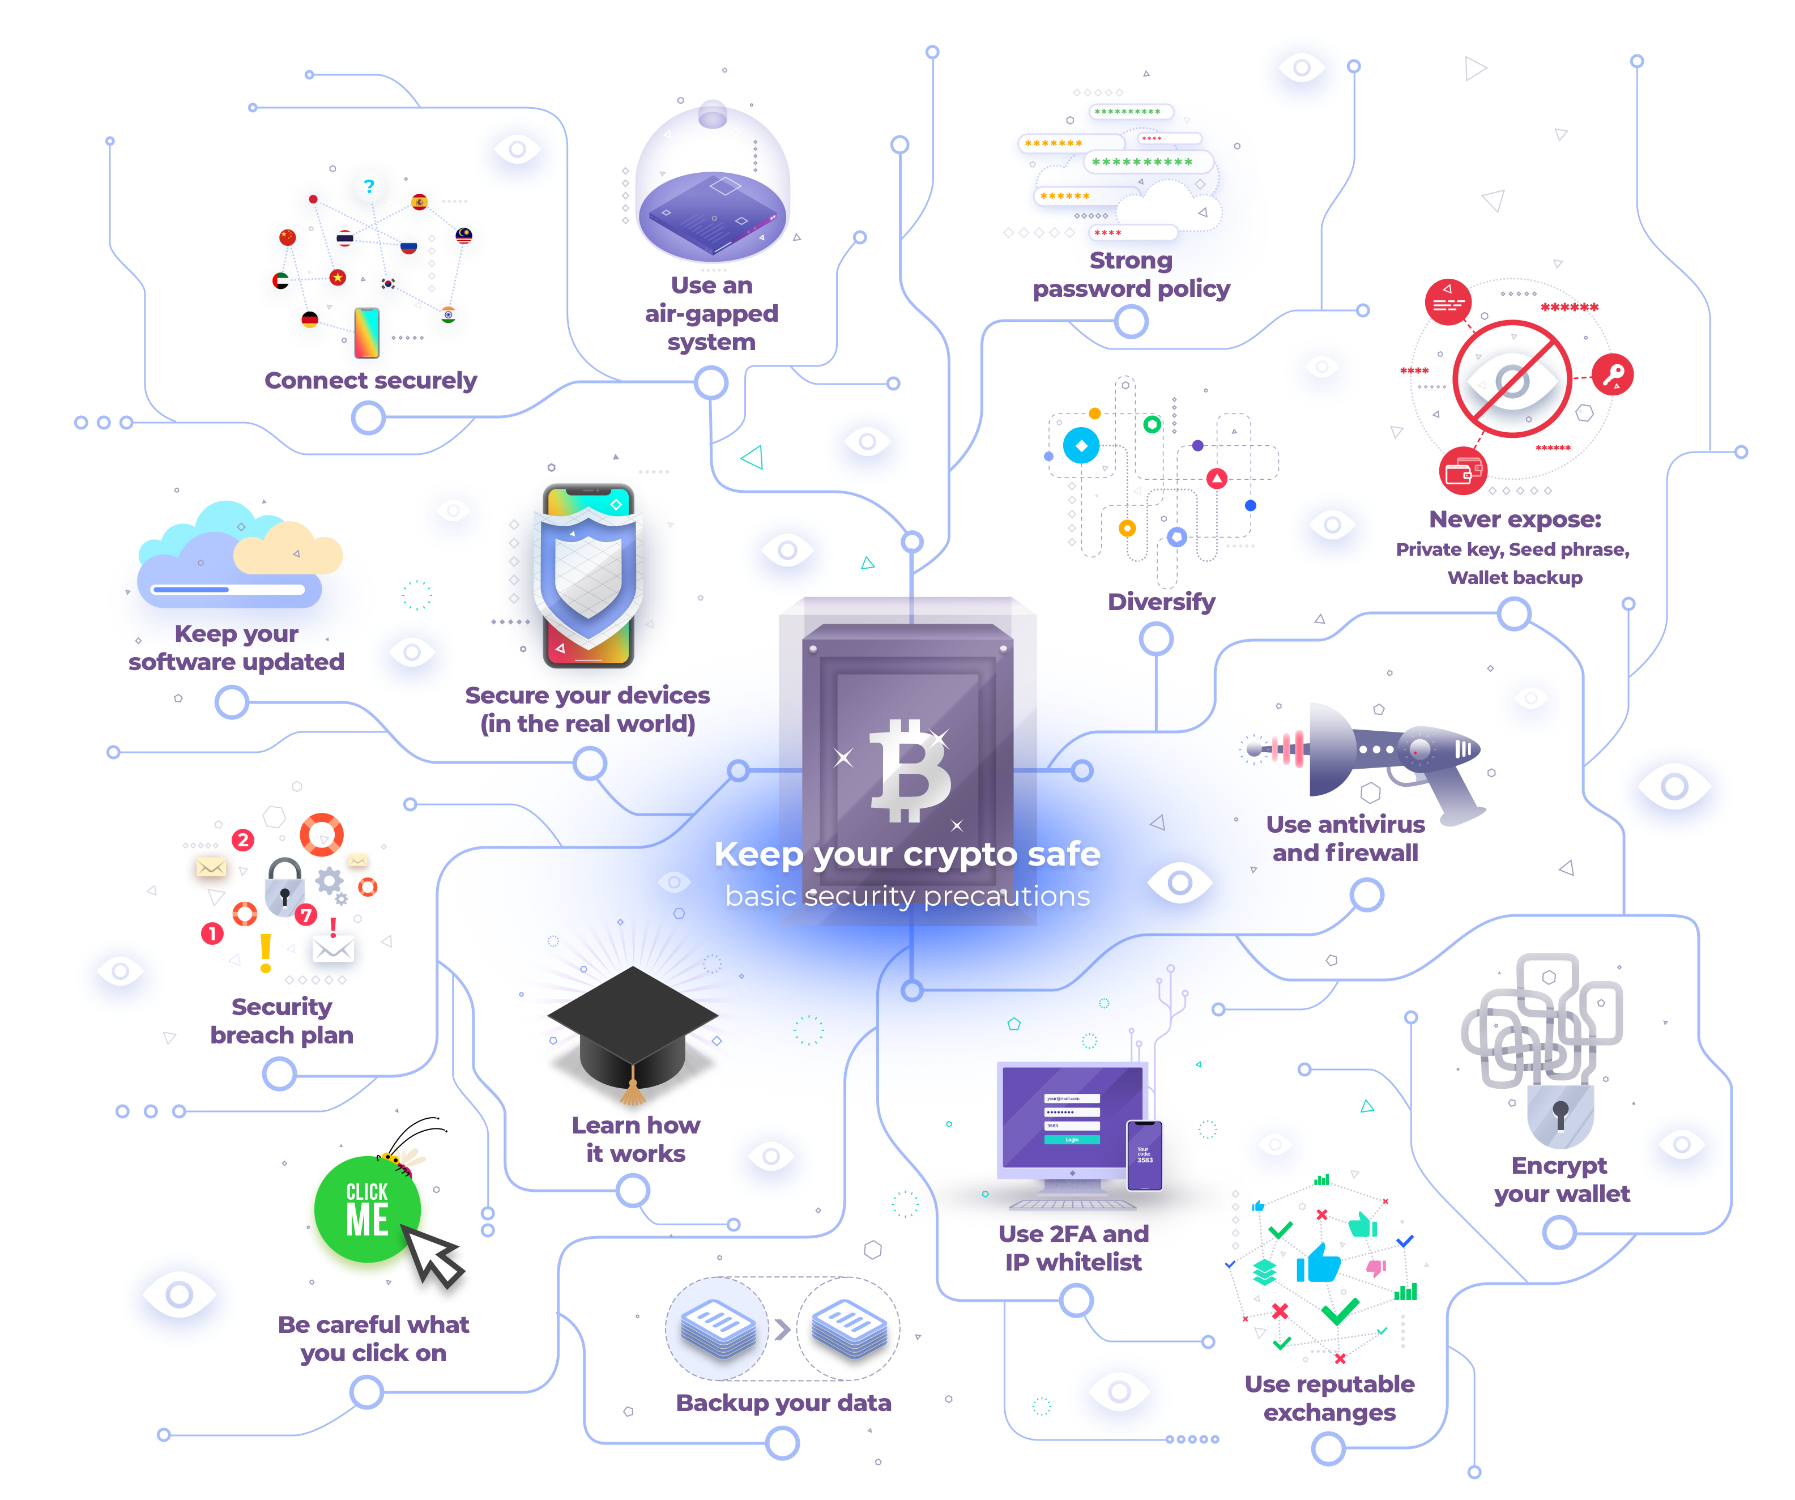 Keeping your crypto safe: basic security precautions